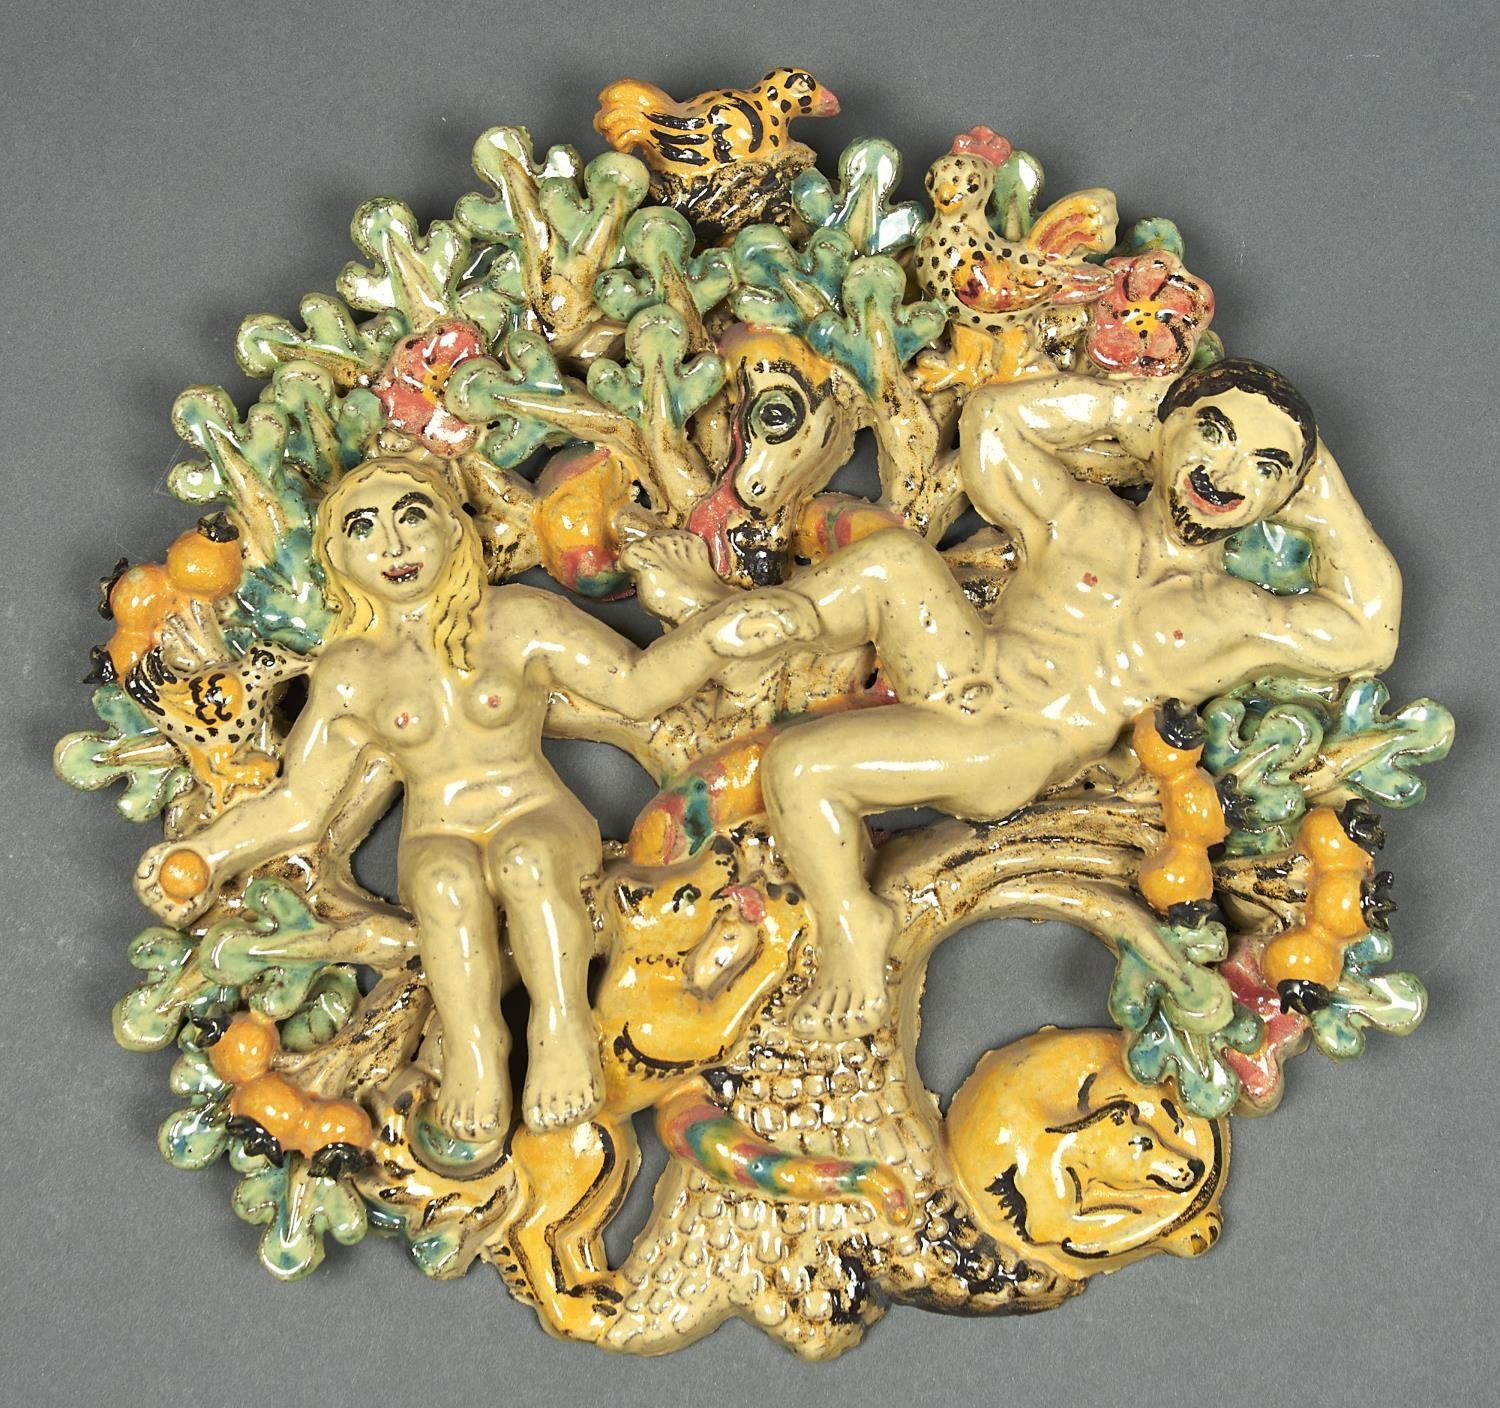 STUDIO POTTERY. A POLYCHROME GLAZED TERRACOTTA ADAM AND EVE WALL PLAQUE BY CATHERINE ROOKE, WITH